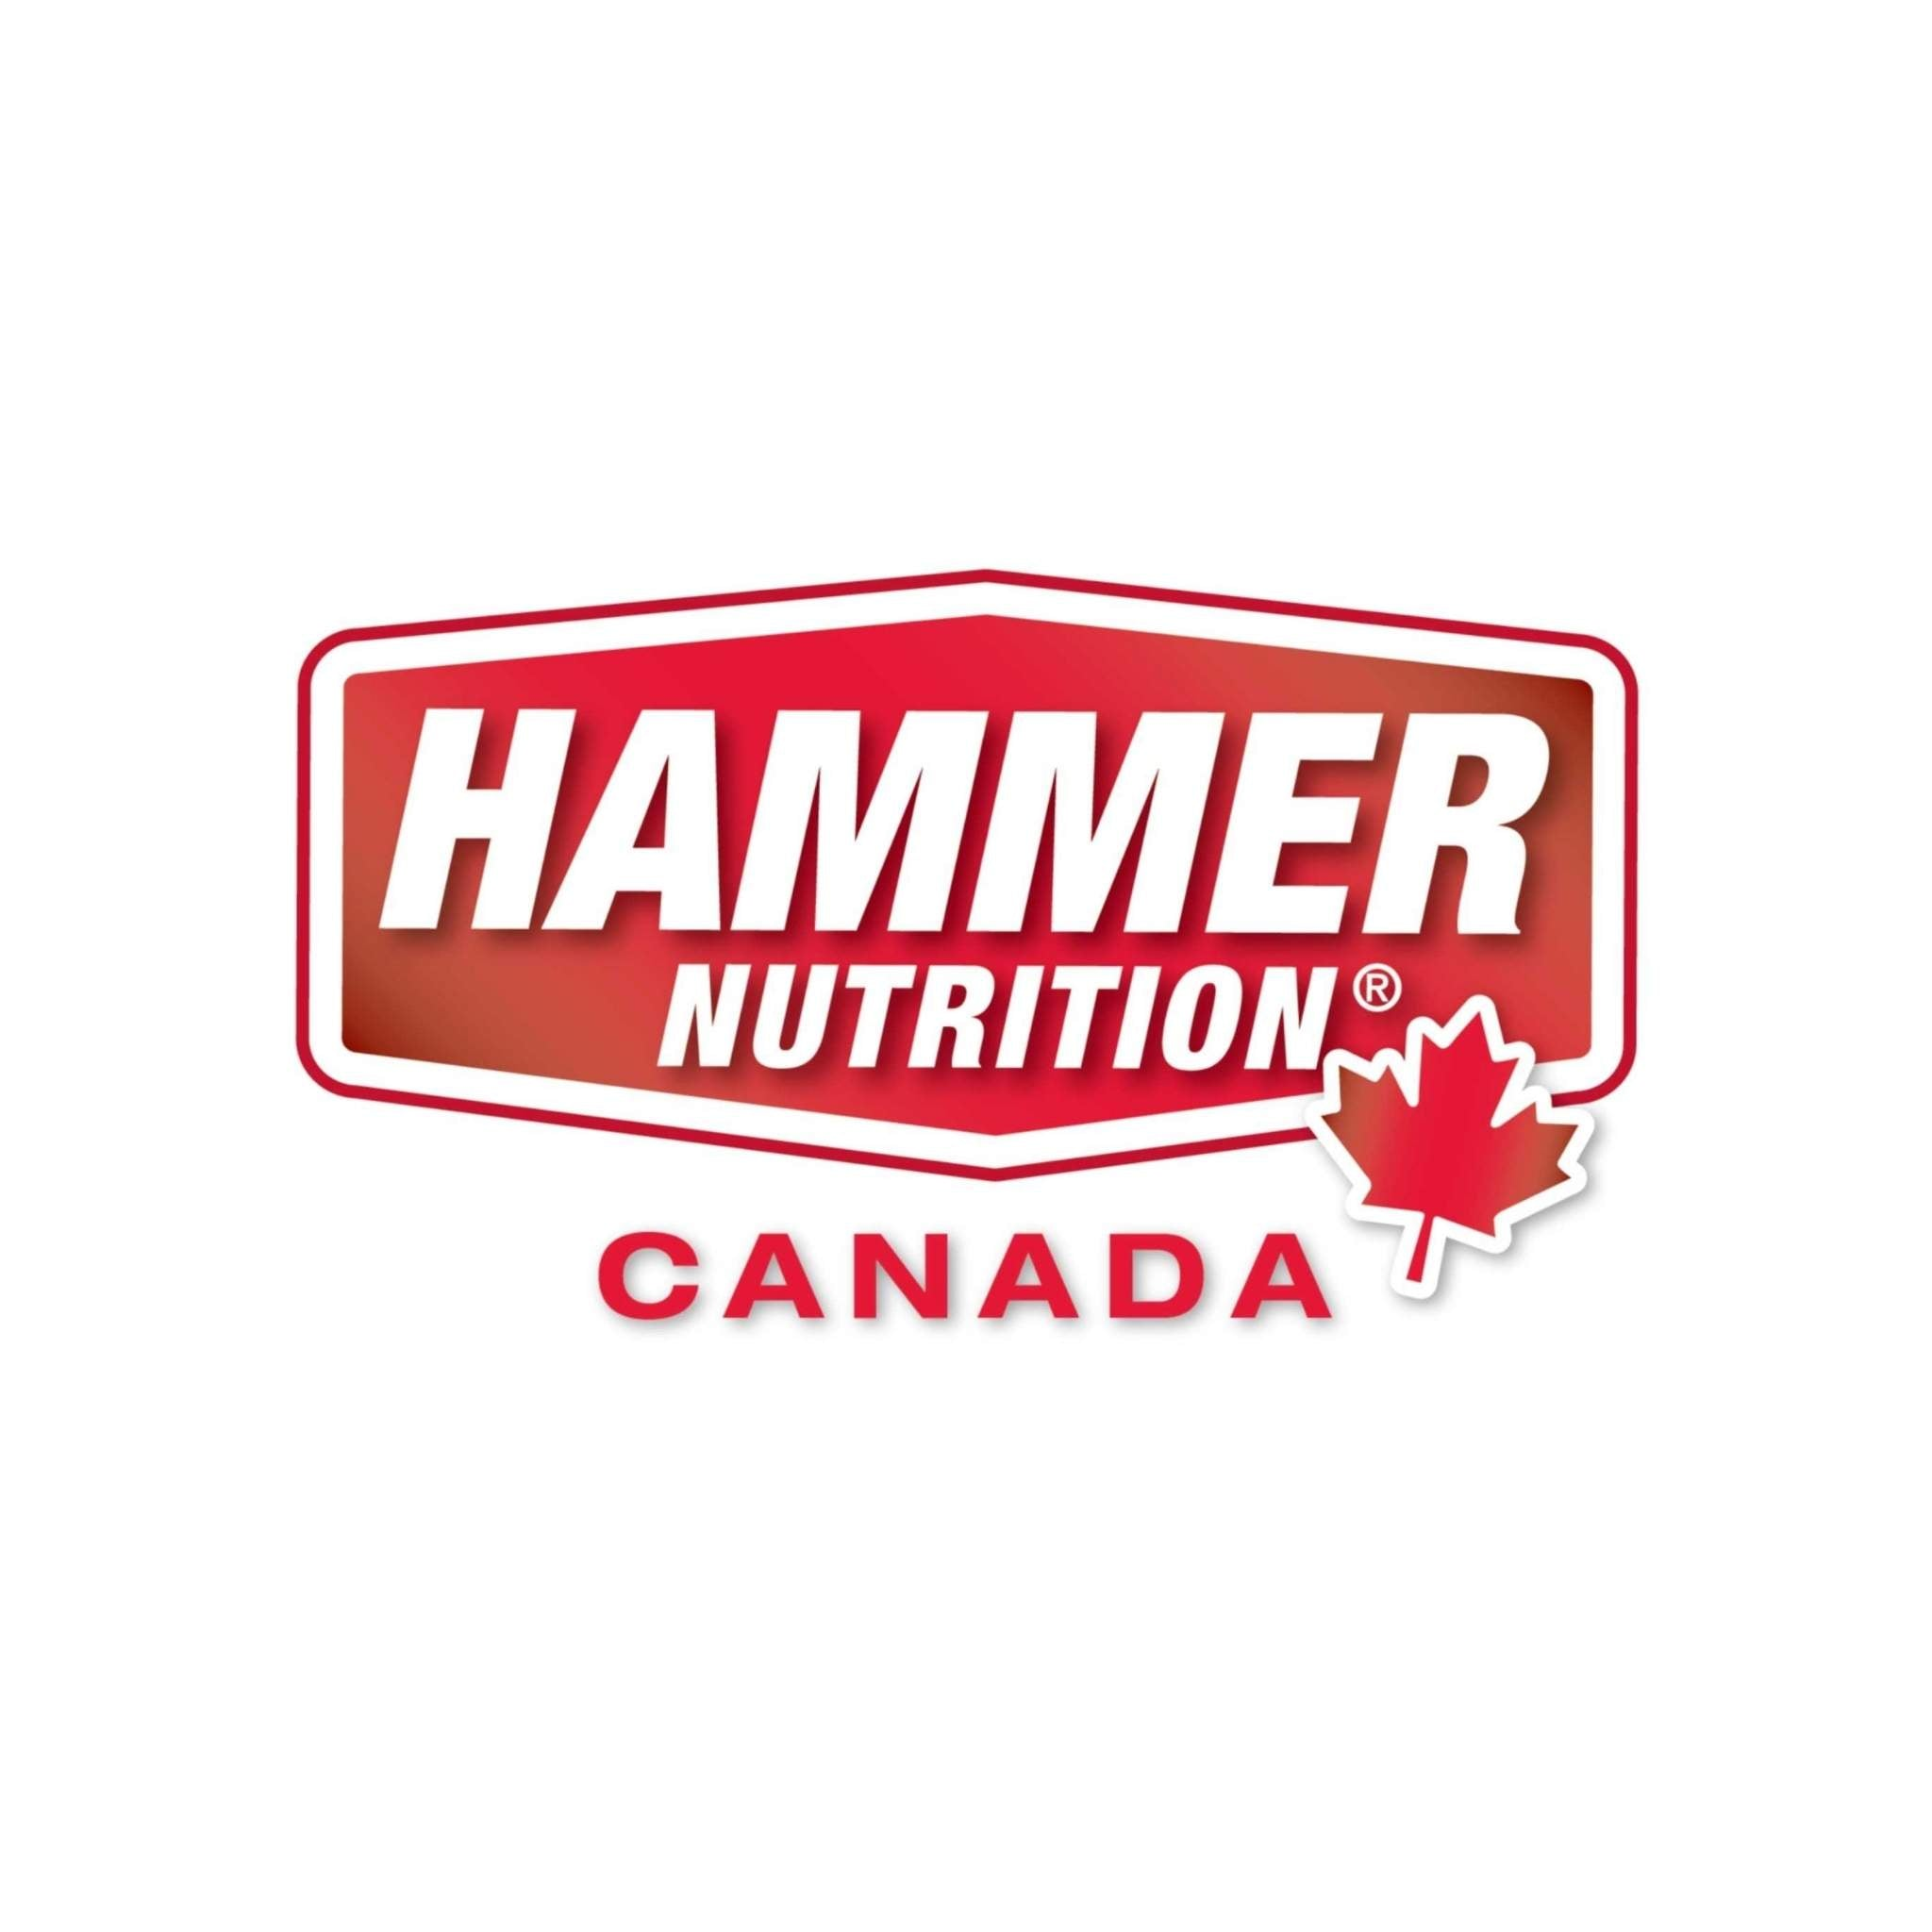 Hammer Nutrition Canada Logo, Team Perfect West